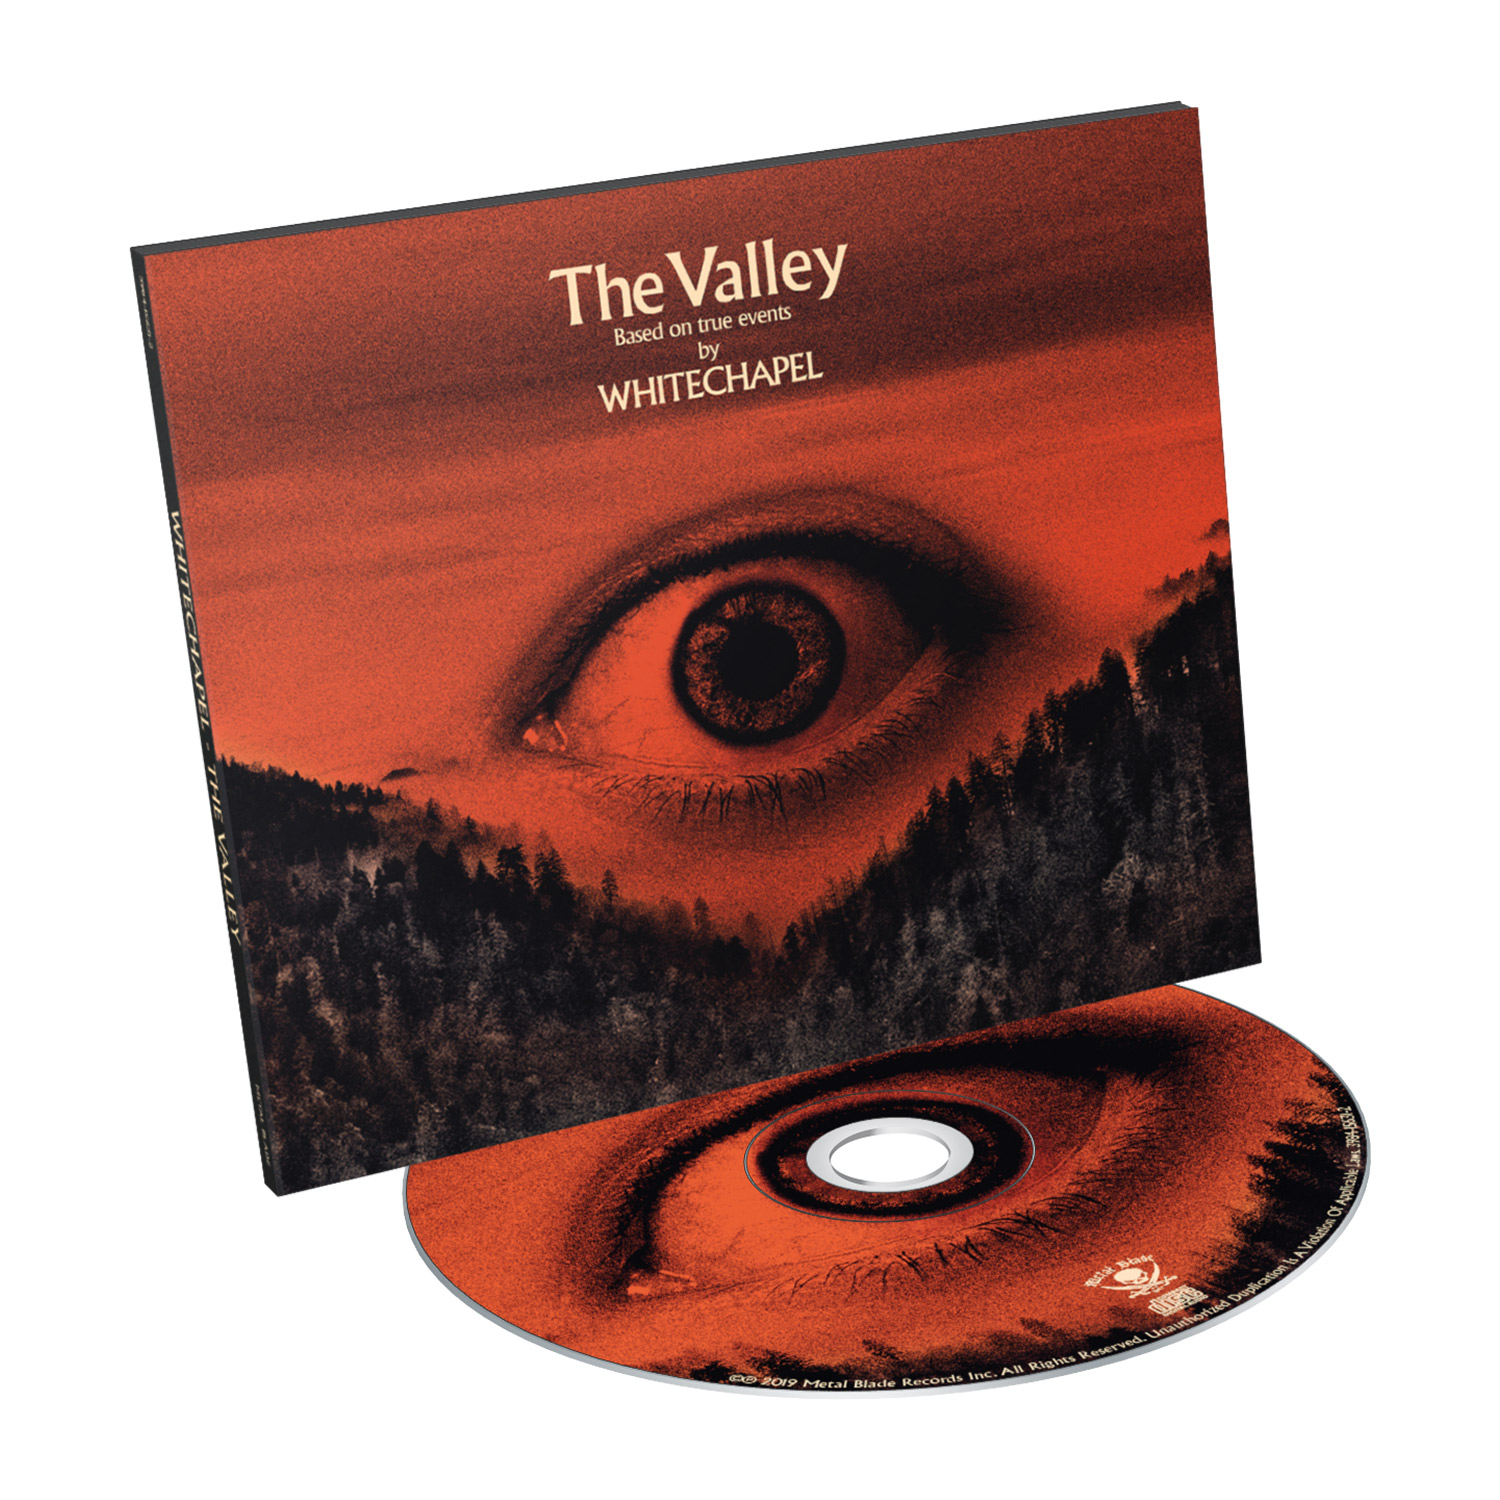 The Valley - CD Bundle - Longsleeve